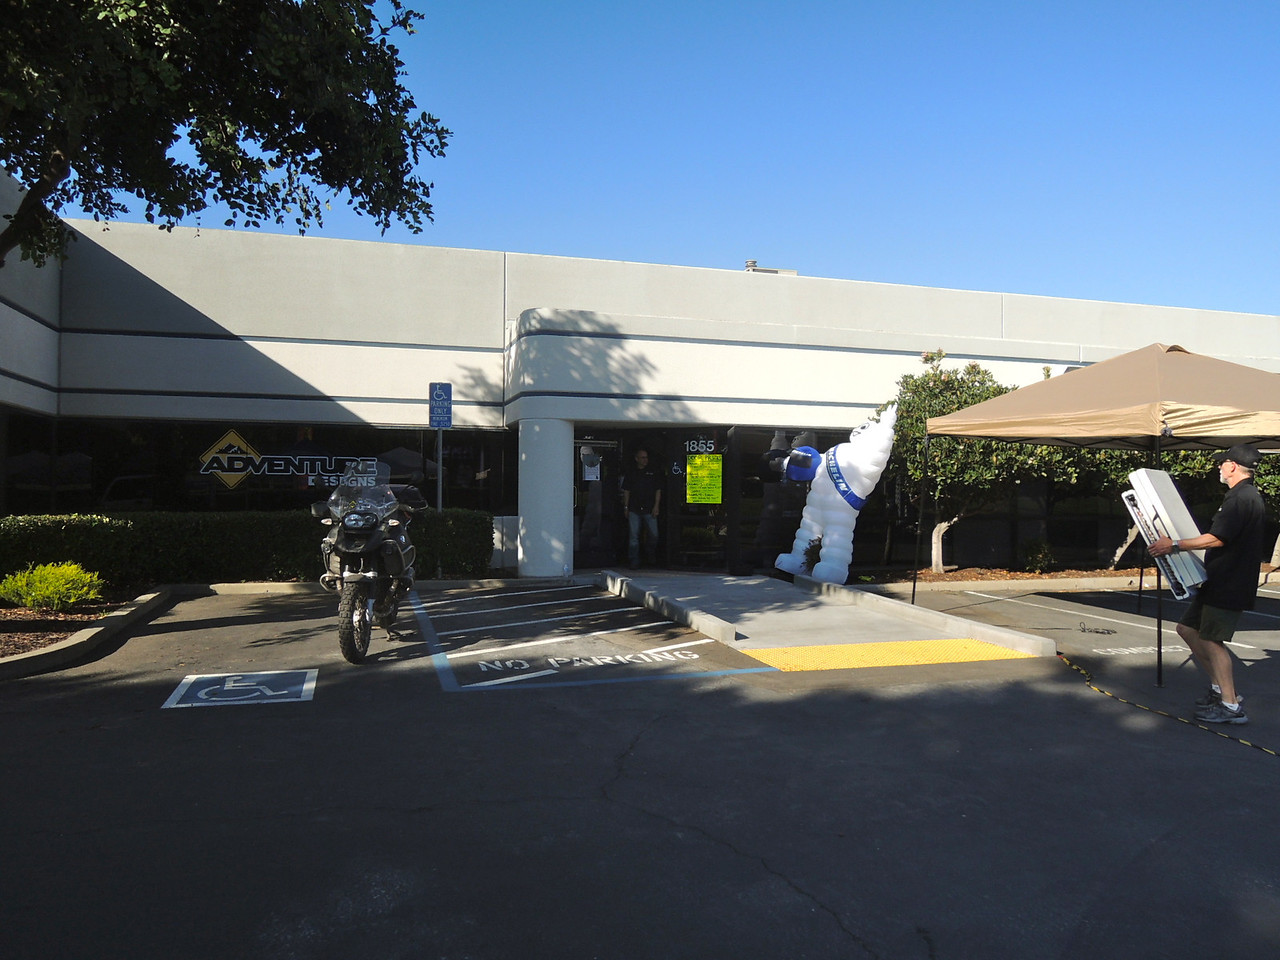 Adventure Designs new location at 1855 Whipple Road, Hayward CA